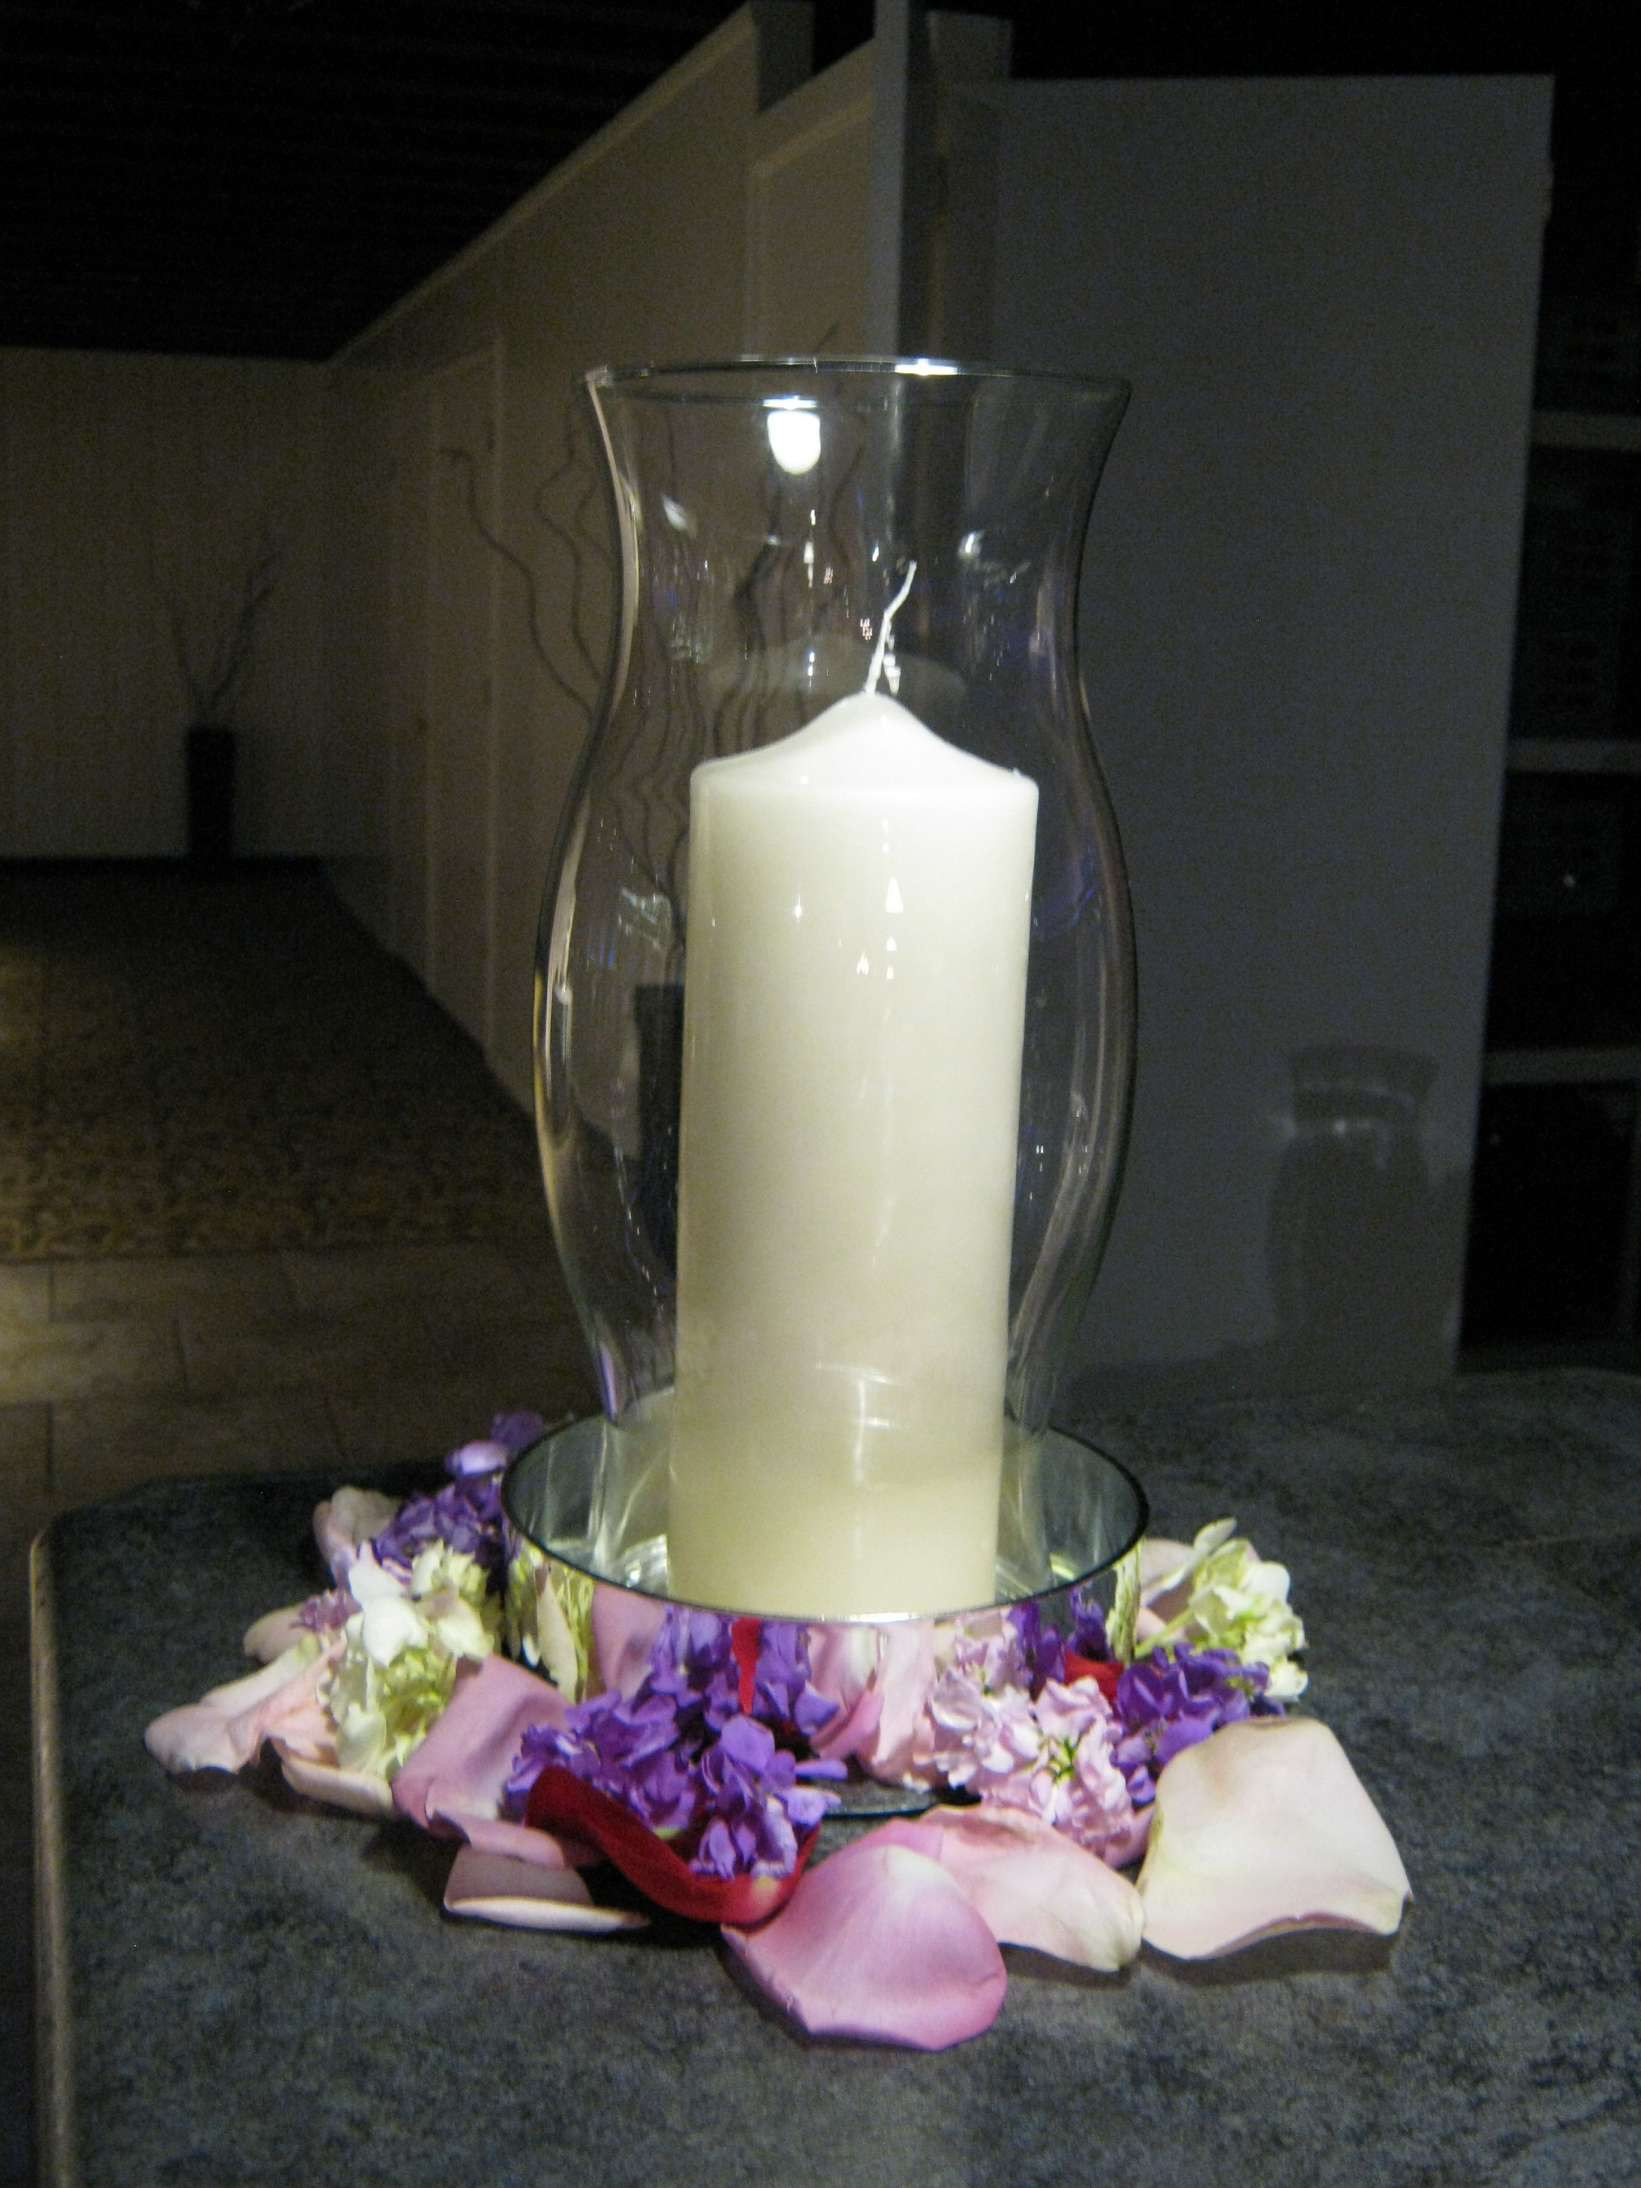 Orchid with Vase Of Large Hurricane Vase Inspirational since Hurricane Vase with Candle Throughout Large Hurricane Vase Inspirational since Hurricane Vase with Candle and Flowers at the Base